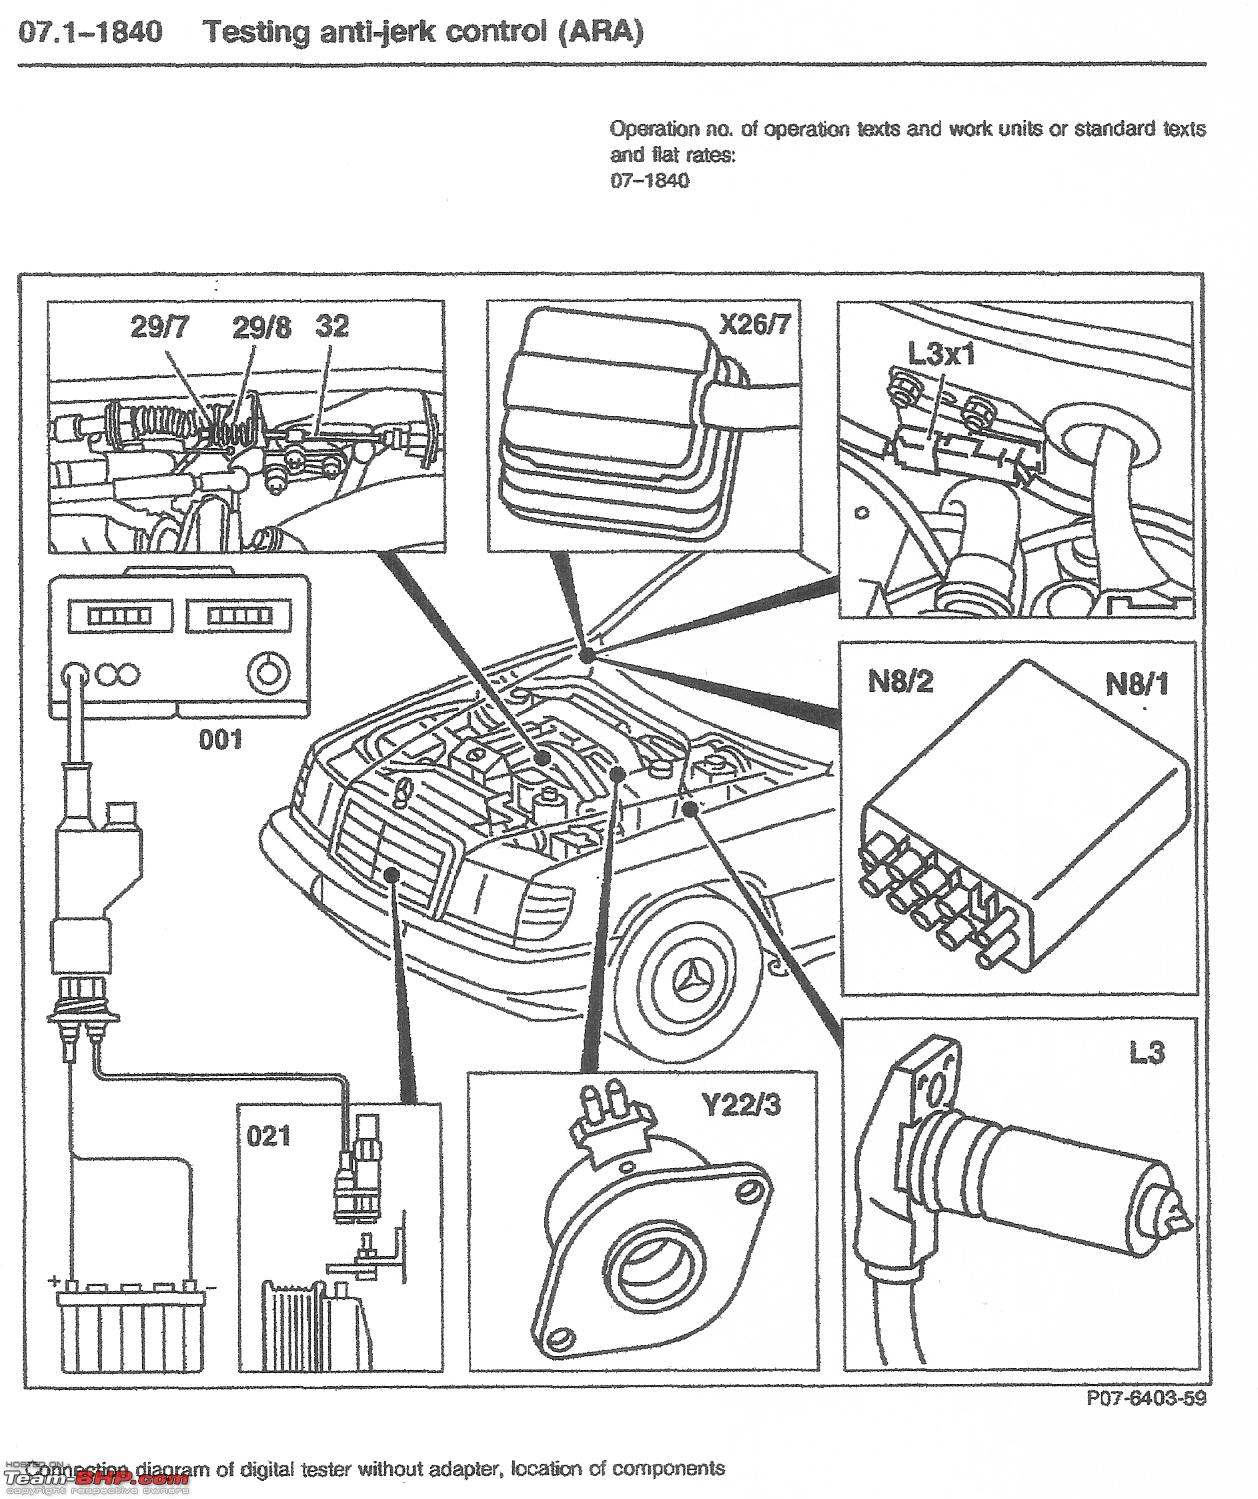 W124 wiring diagram wascomat w124 wiring diagram for Mercedes benz w124 230e wiring diagram